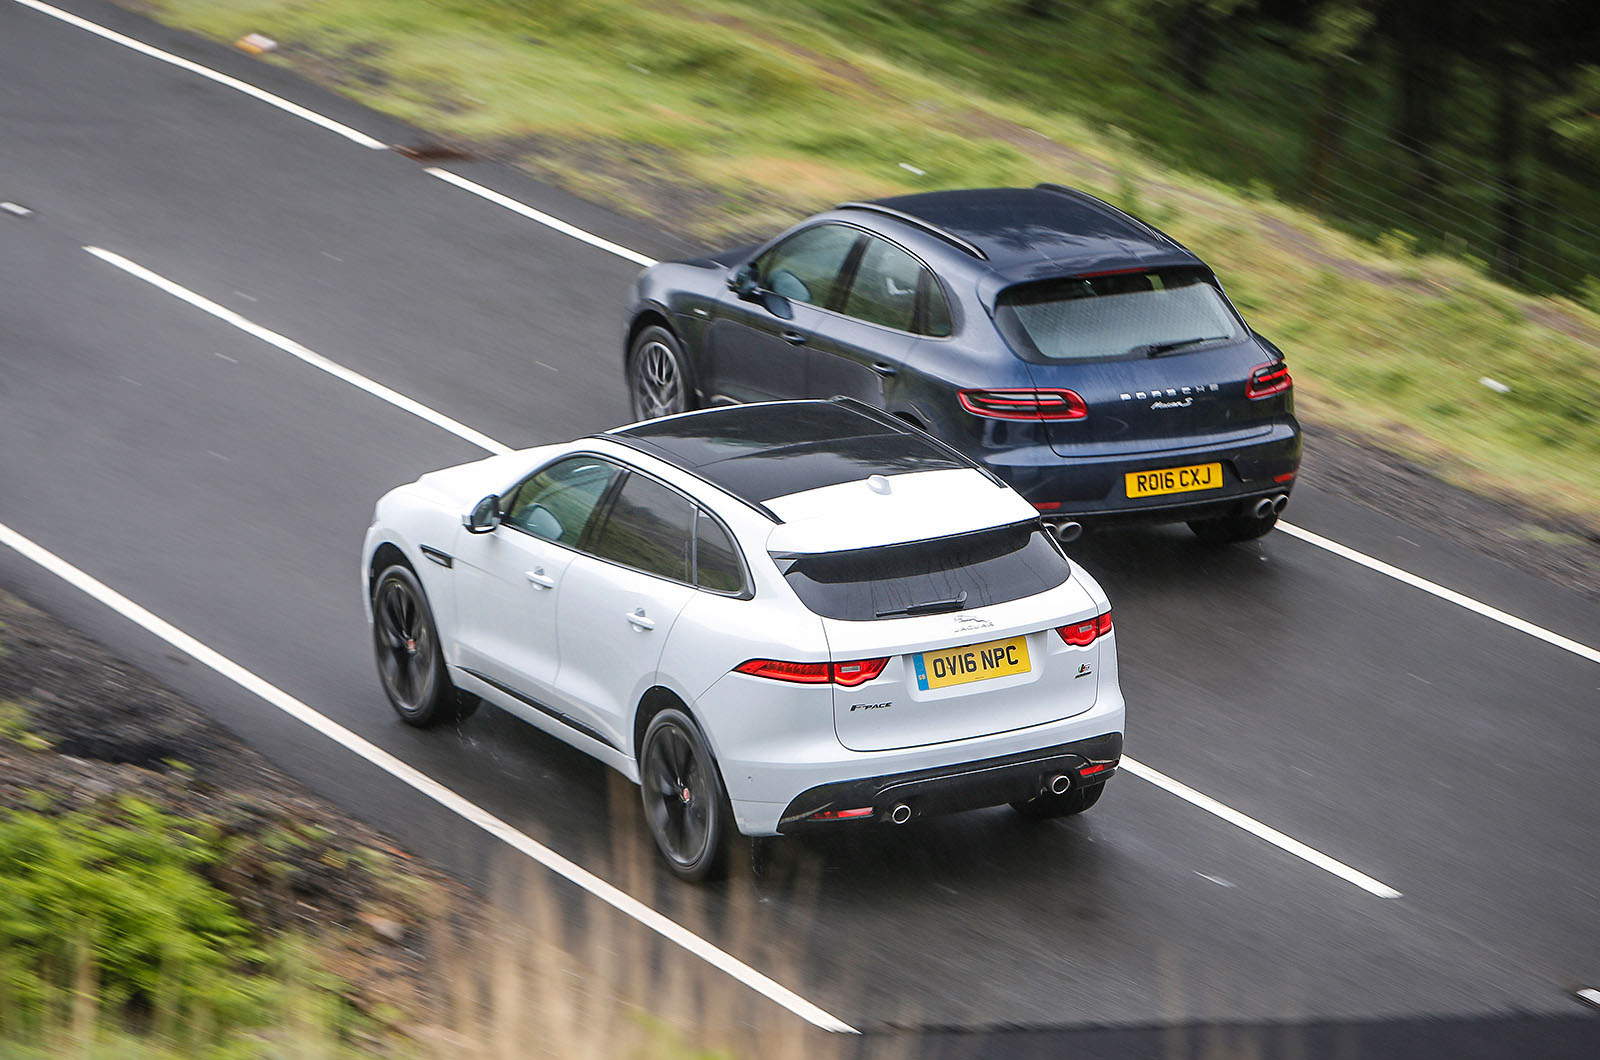 Jaguar F-Pace vs Porsche Macan - luxury SUVs compared | Autocar